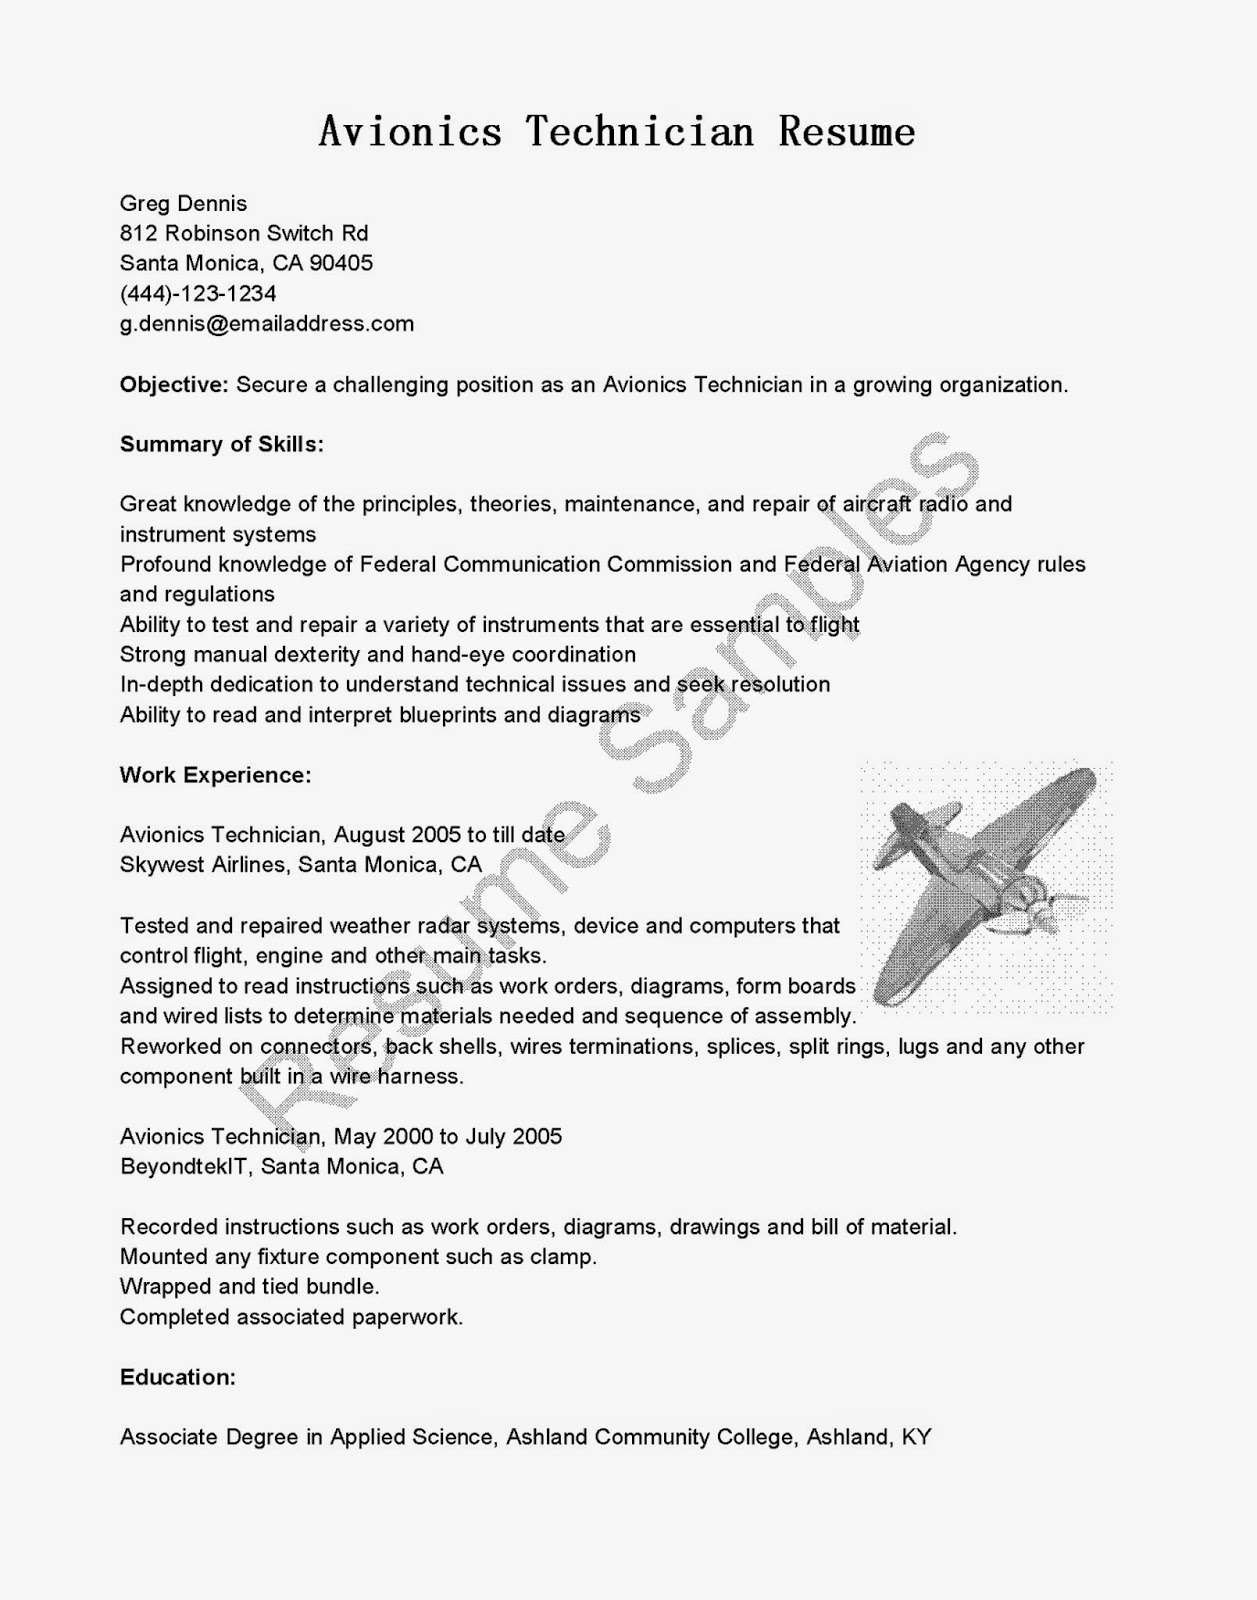 resume samples  avionics technician resume sample